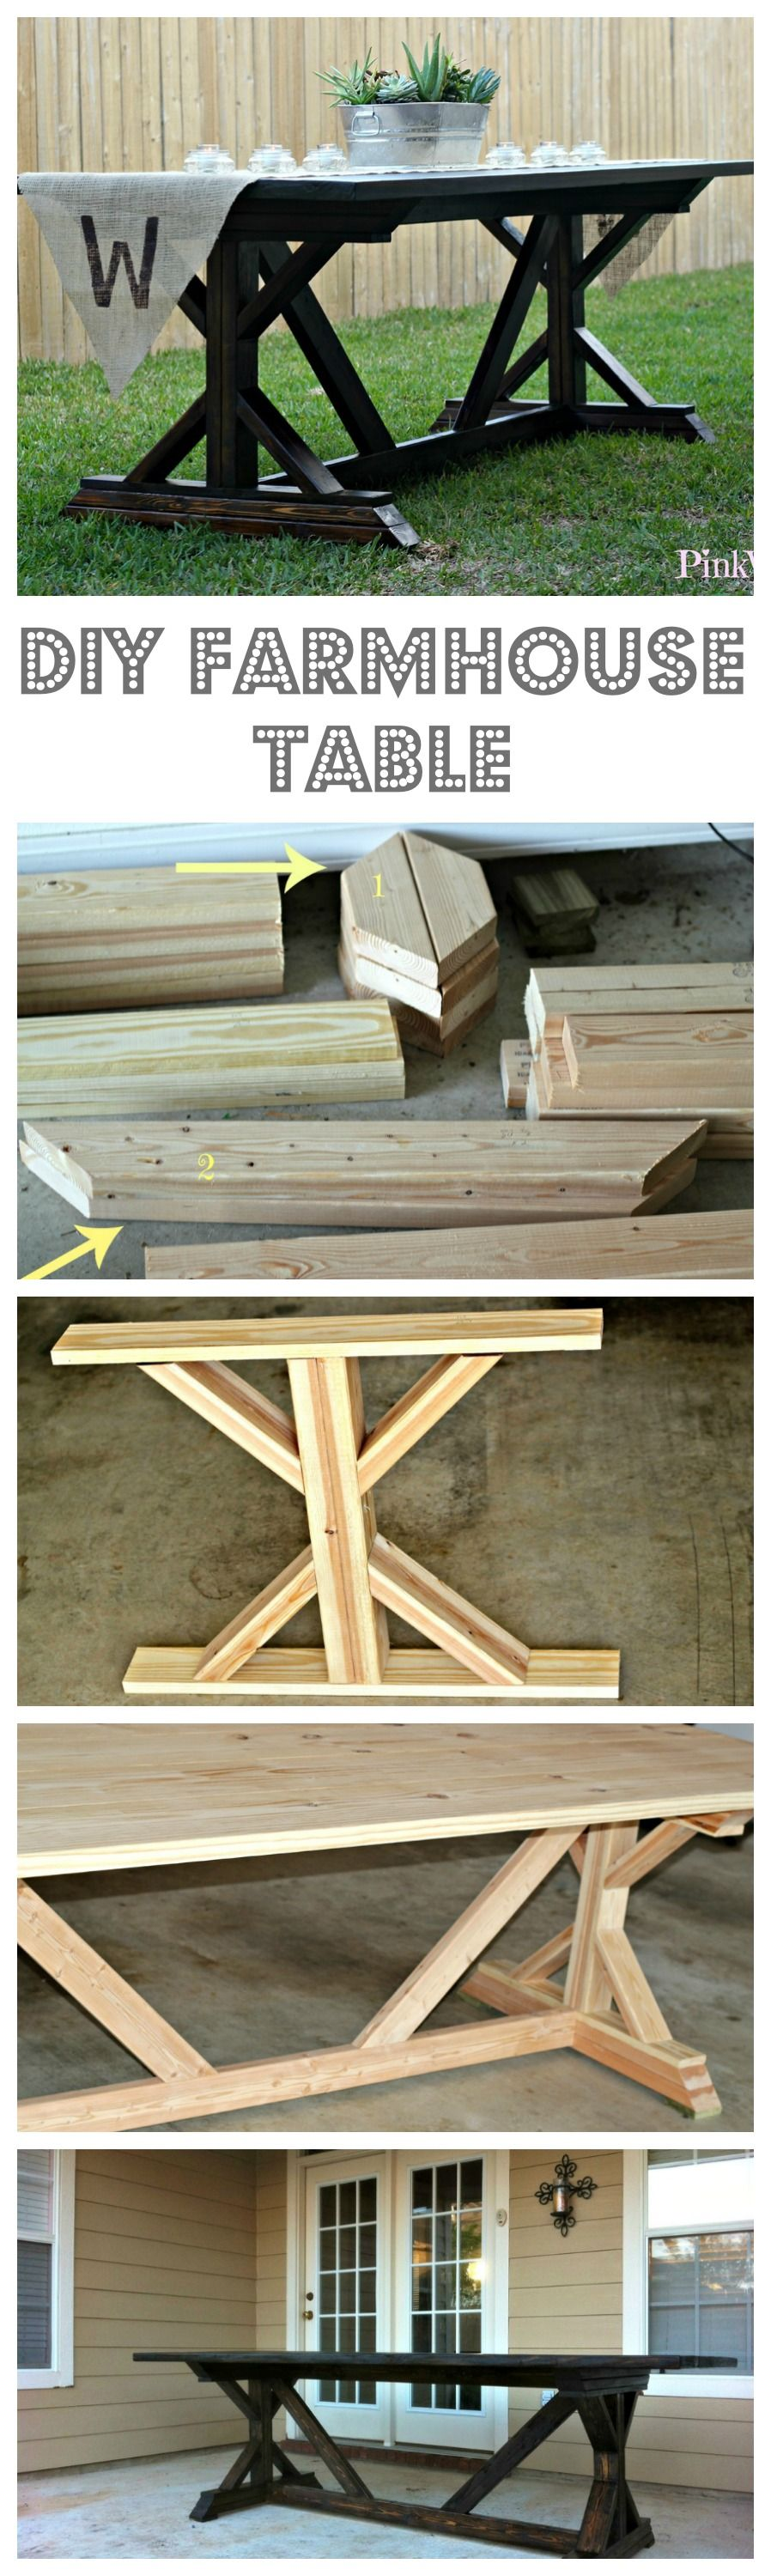 Inspiring table made out of leftover materials